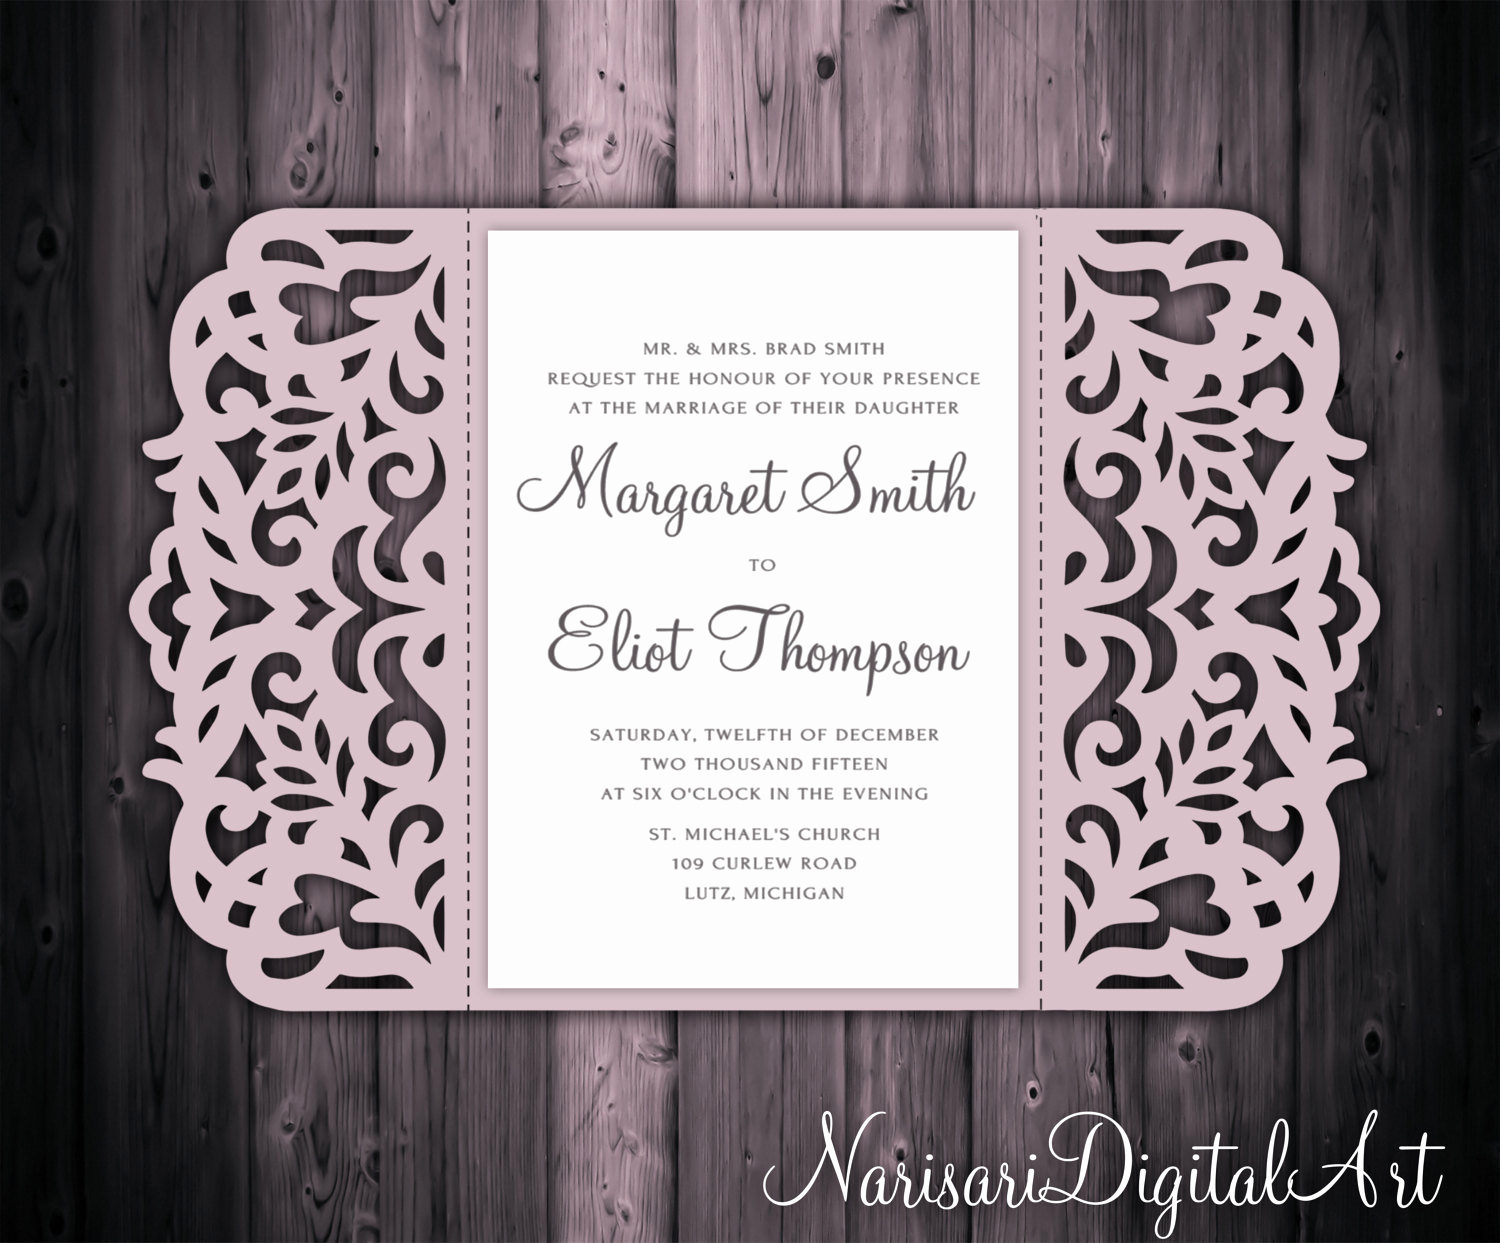 Wedding Invitation Svg Files Best Of 5x7 Gate Fold Wedding Invitation Card Template Quinceanera